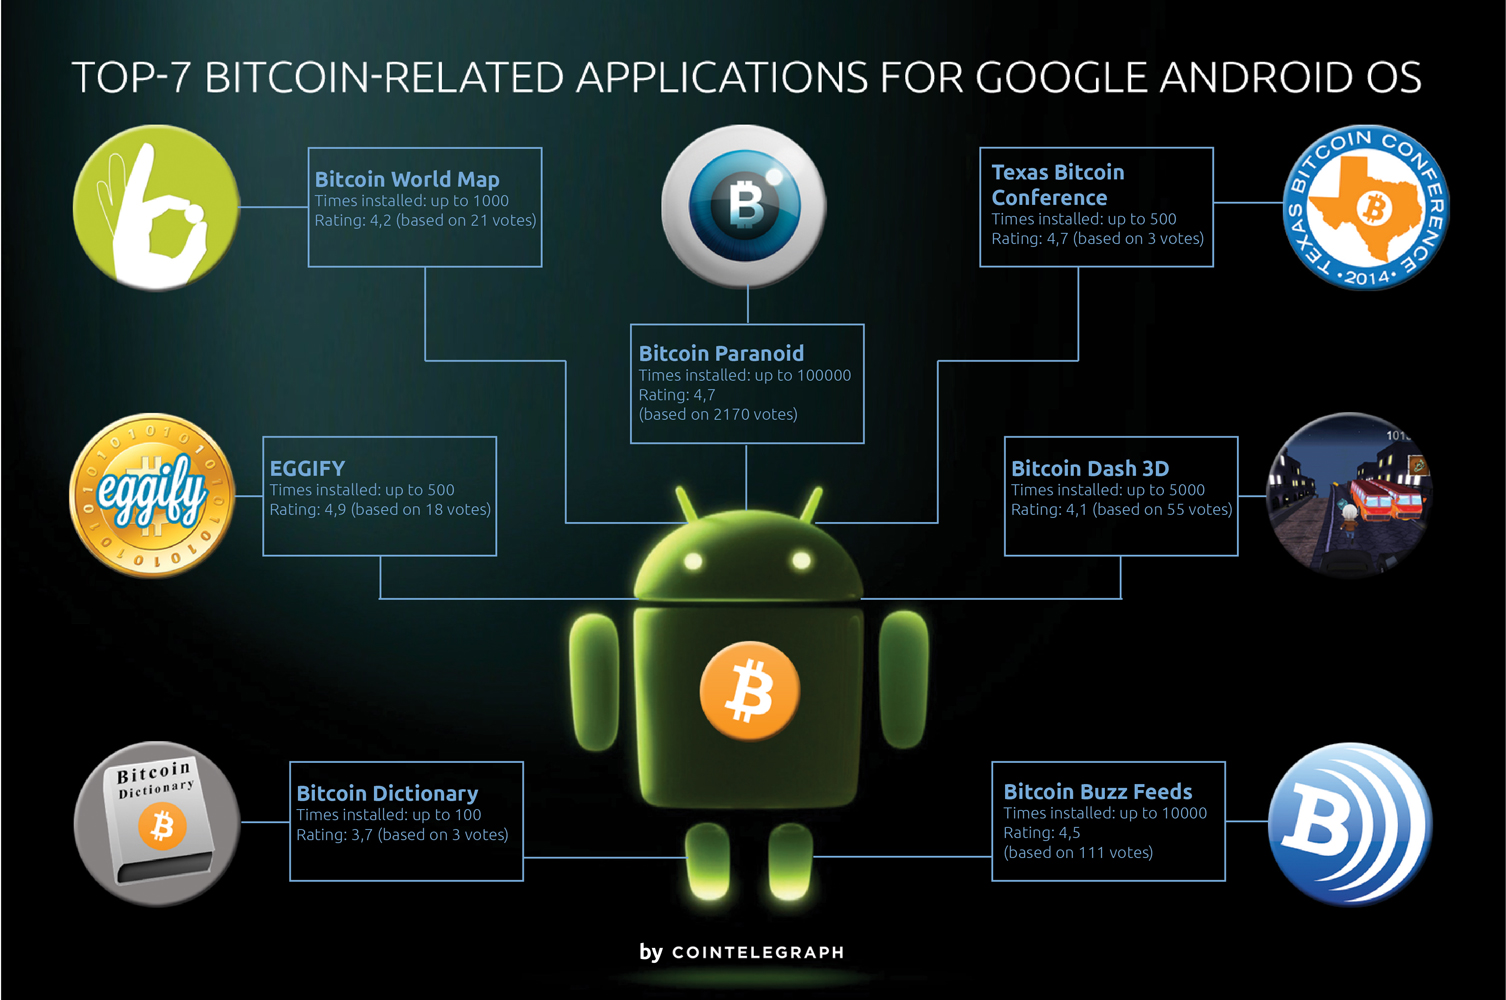 TOP-7 Bitcoin-Related Applications for Google Android OS